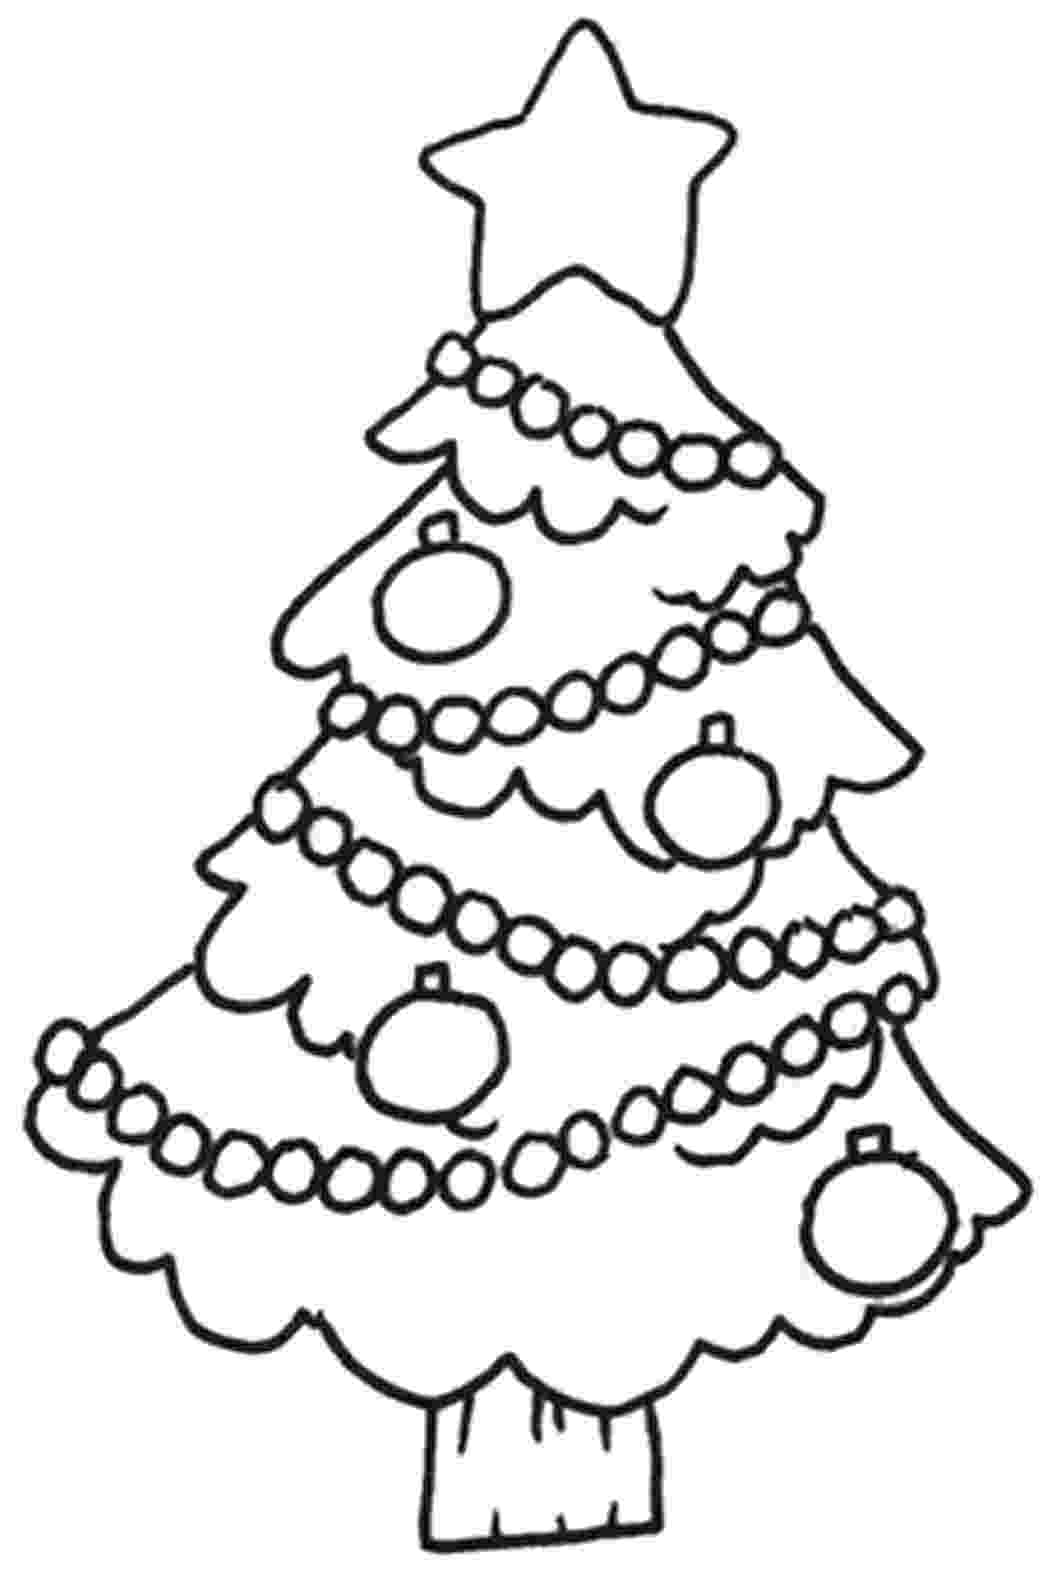 printable christmas coloring pages for kindergarten printable christmas coloring pages for kindergarten christmas kindergarten printable coloring for pages